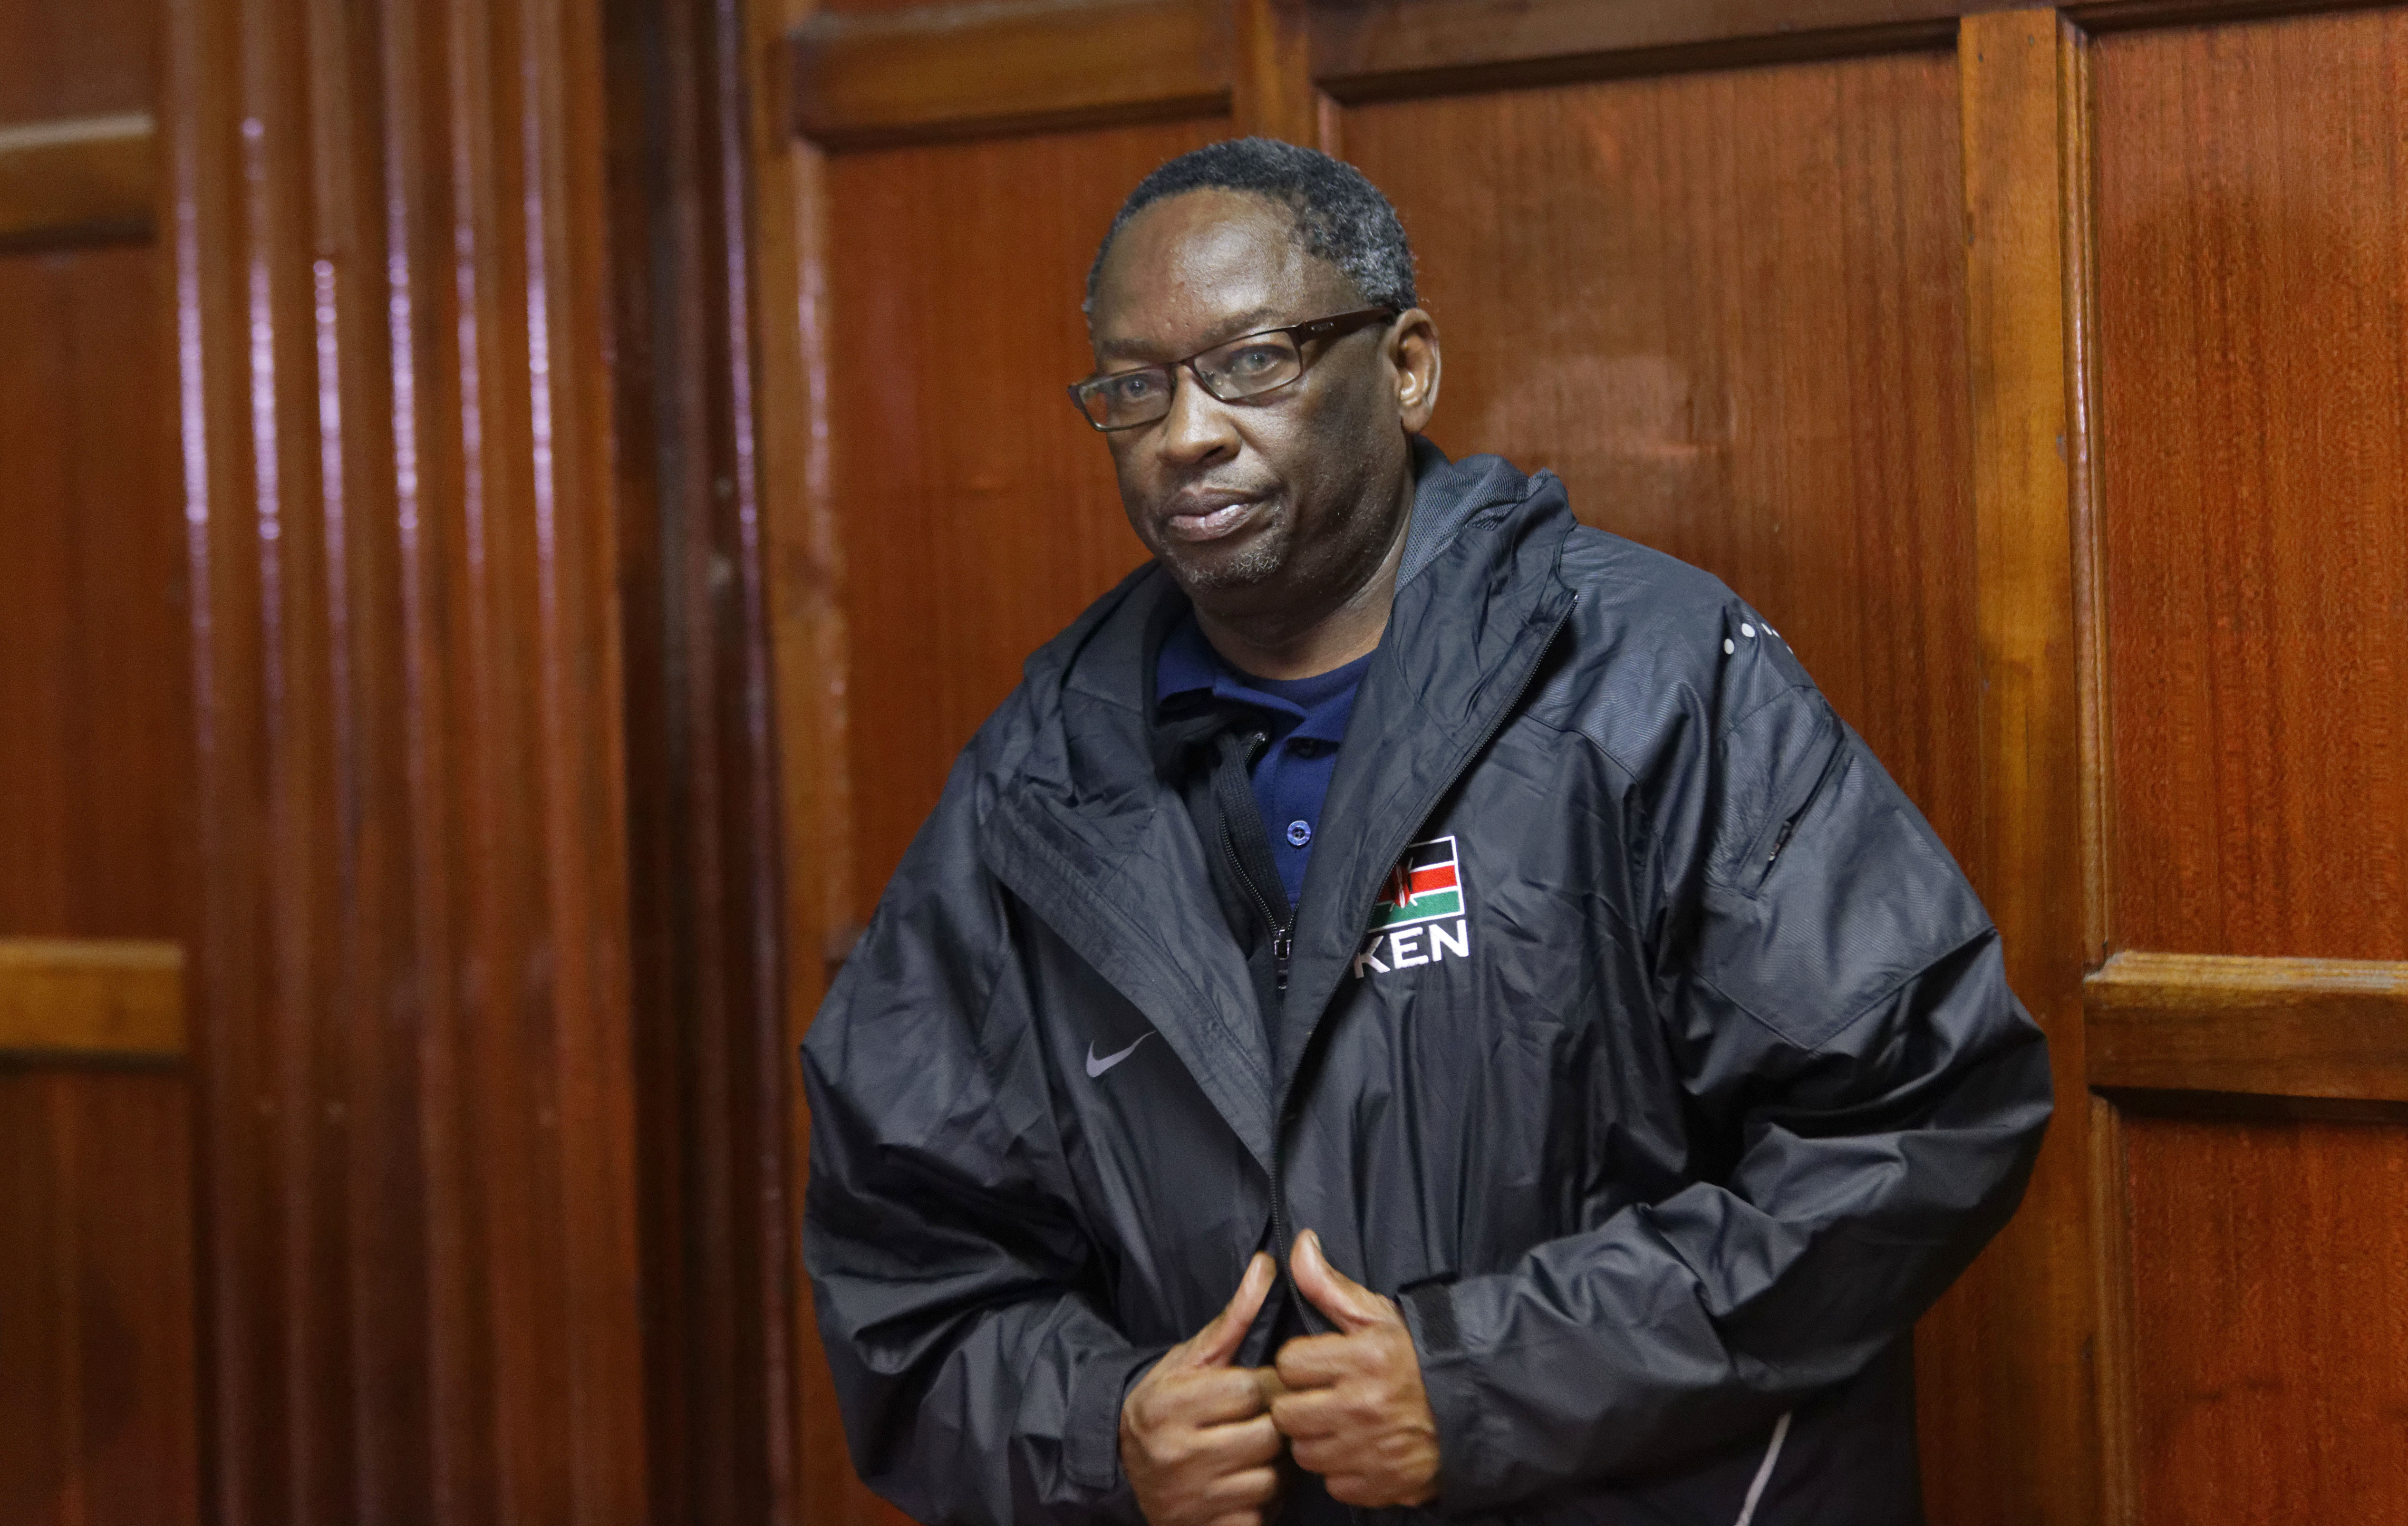 National Olympic Committee of Kenya vice president Ben Ekumbo, who is also head of the country's swimming federation, appears in the dock at the Milimani Law Court in Nairobi, Kenya Tuesday, Nov. 22, 2016. Ekumbo, the fifth senior Olympic committee offici